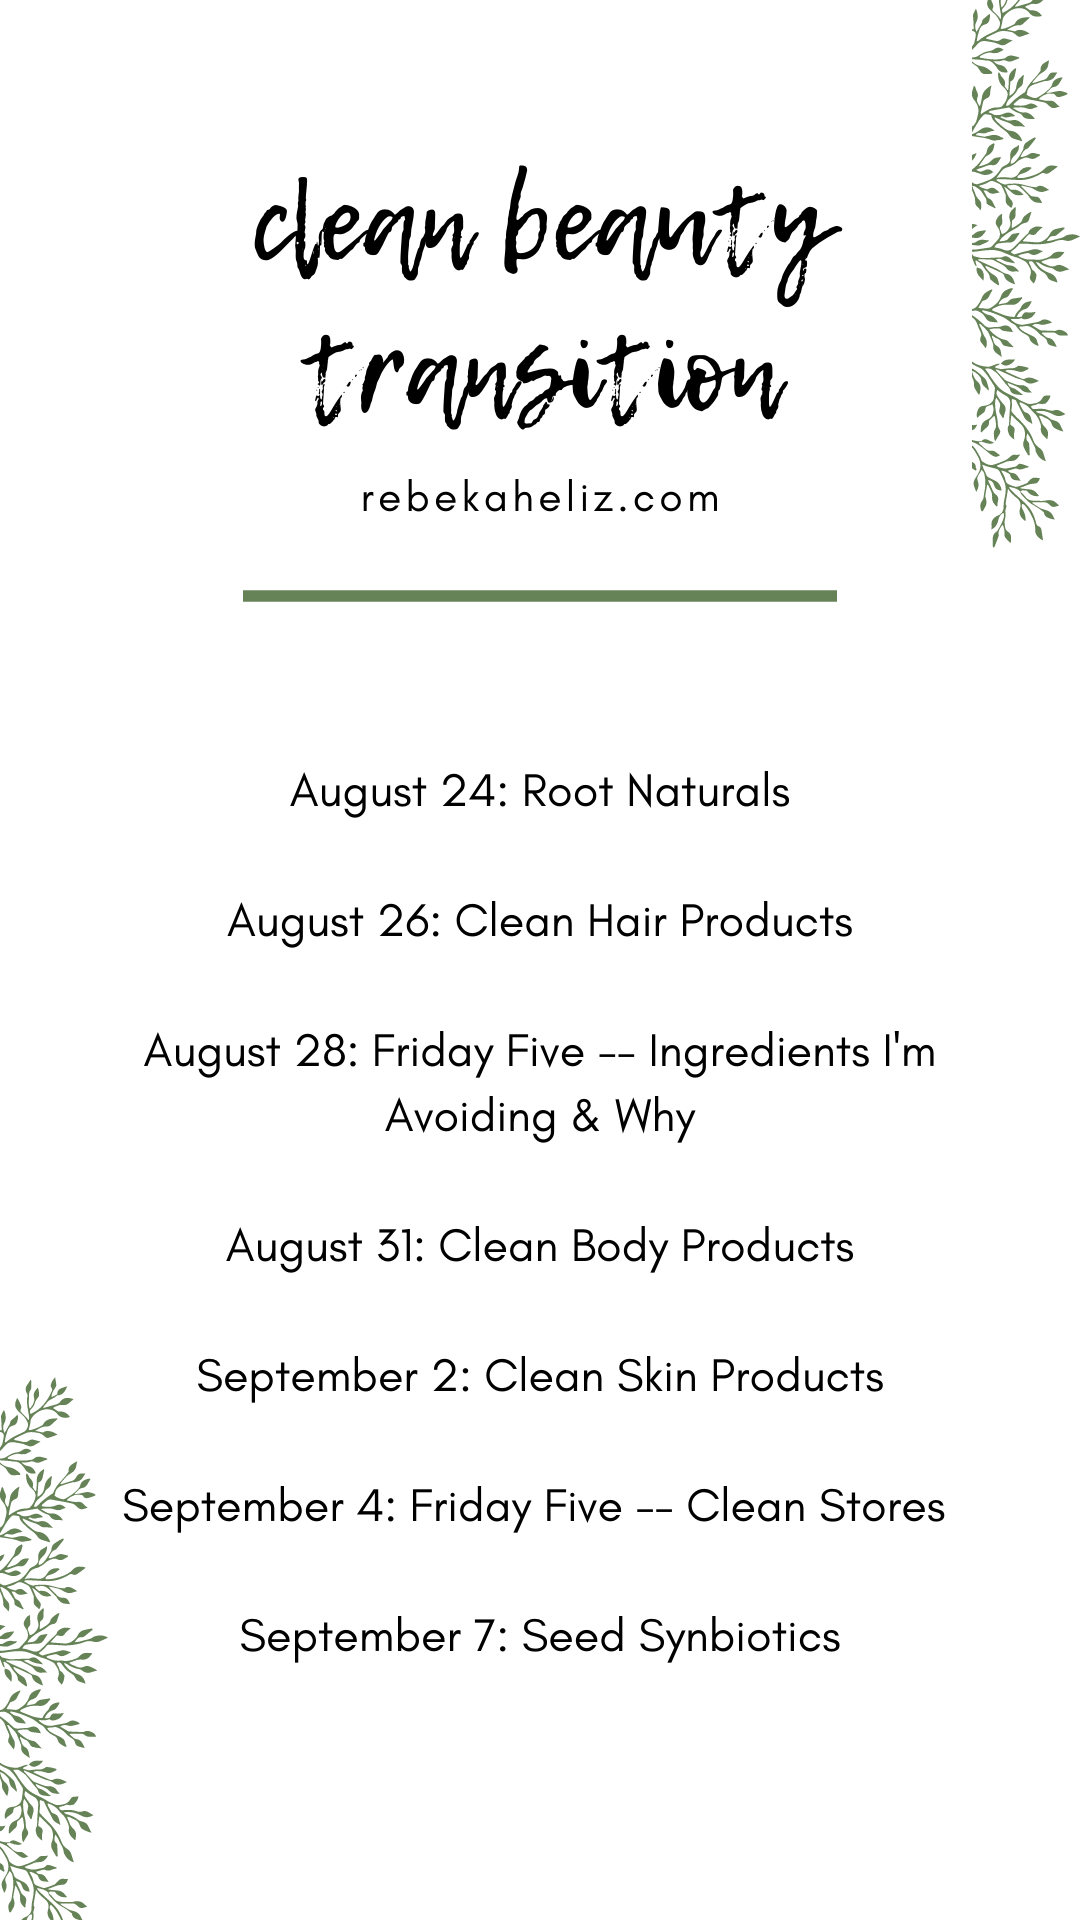 clean beauty, clean skincare, skincare, haircare, beauty products